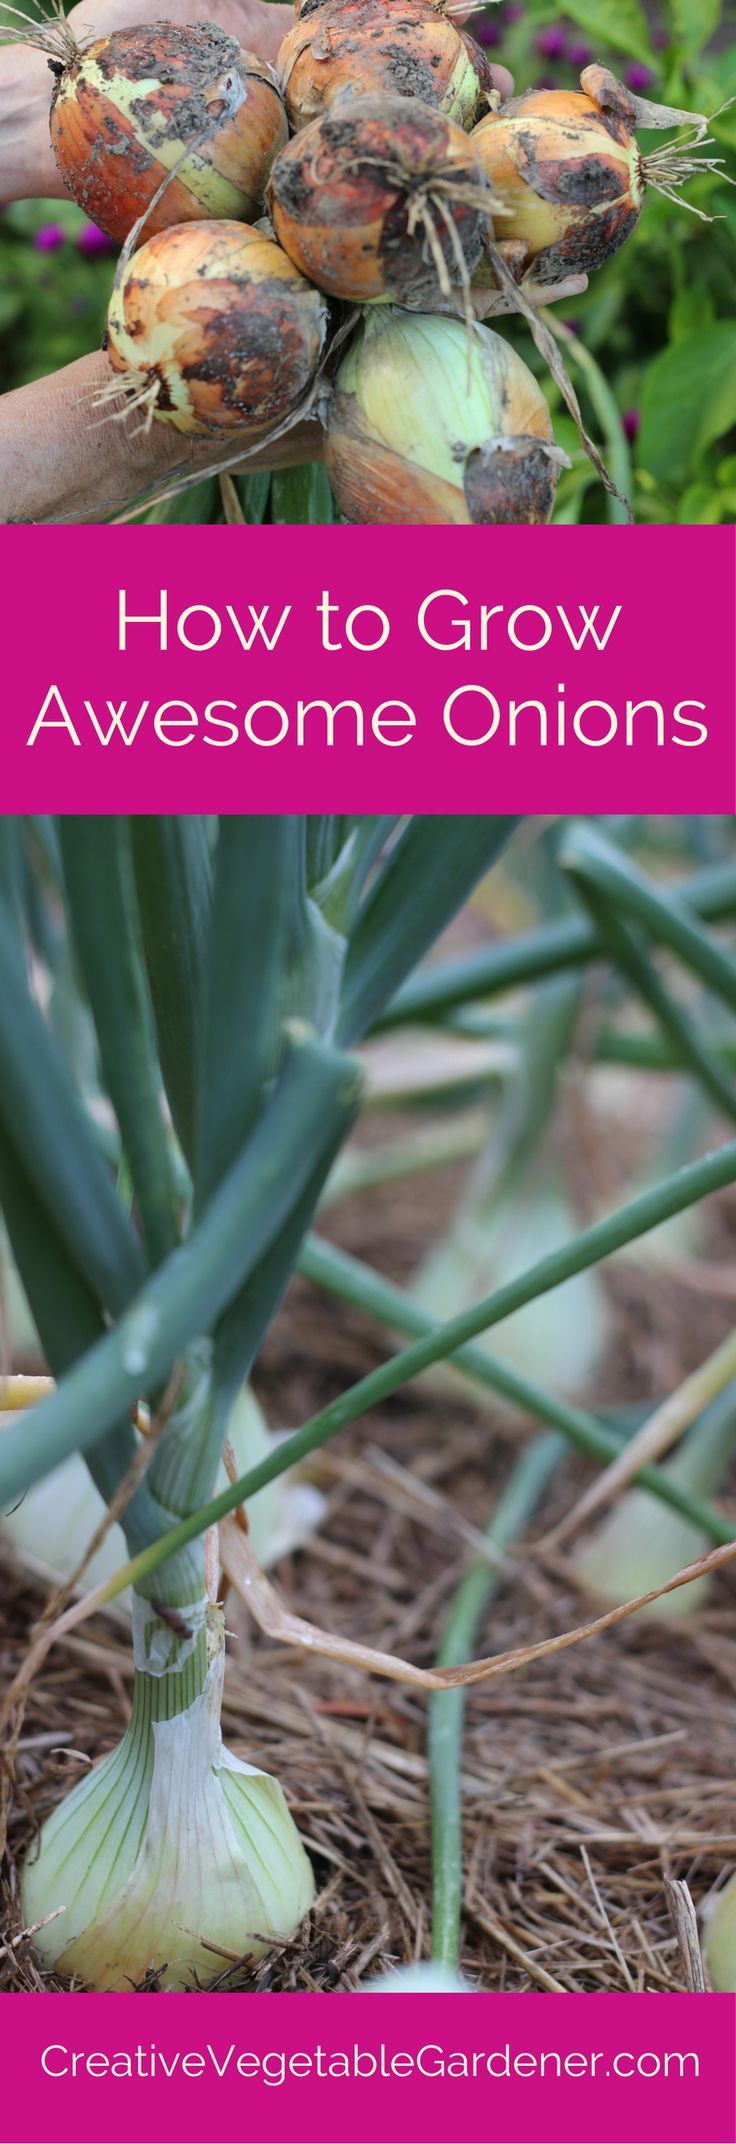 Roses In Garden: How To Grow Awesome Onions In Your Garden